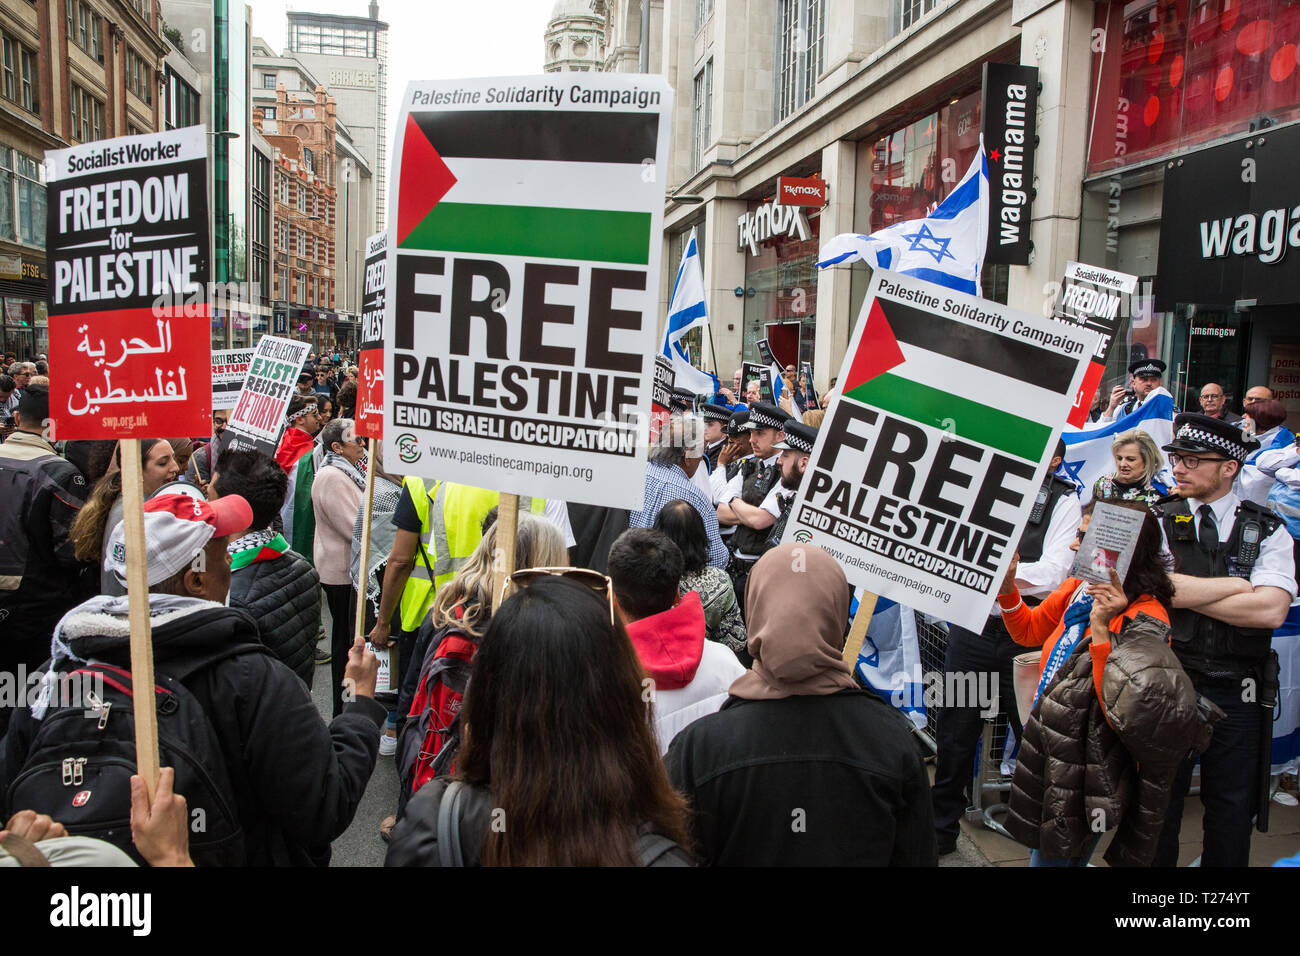 London, UK. 30th March, 2019. Pro-Palestinian campaigners attending a Rally for Palestine outside the Israeli embassy to demand freedom, justice and equality for the Palestinian people stand in front of a small pro-Israel counter-protest Credit: Mark Kerrison/Alamy Live News - Stock Image